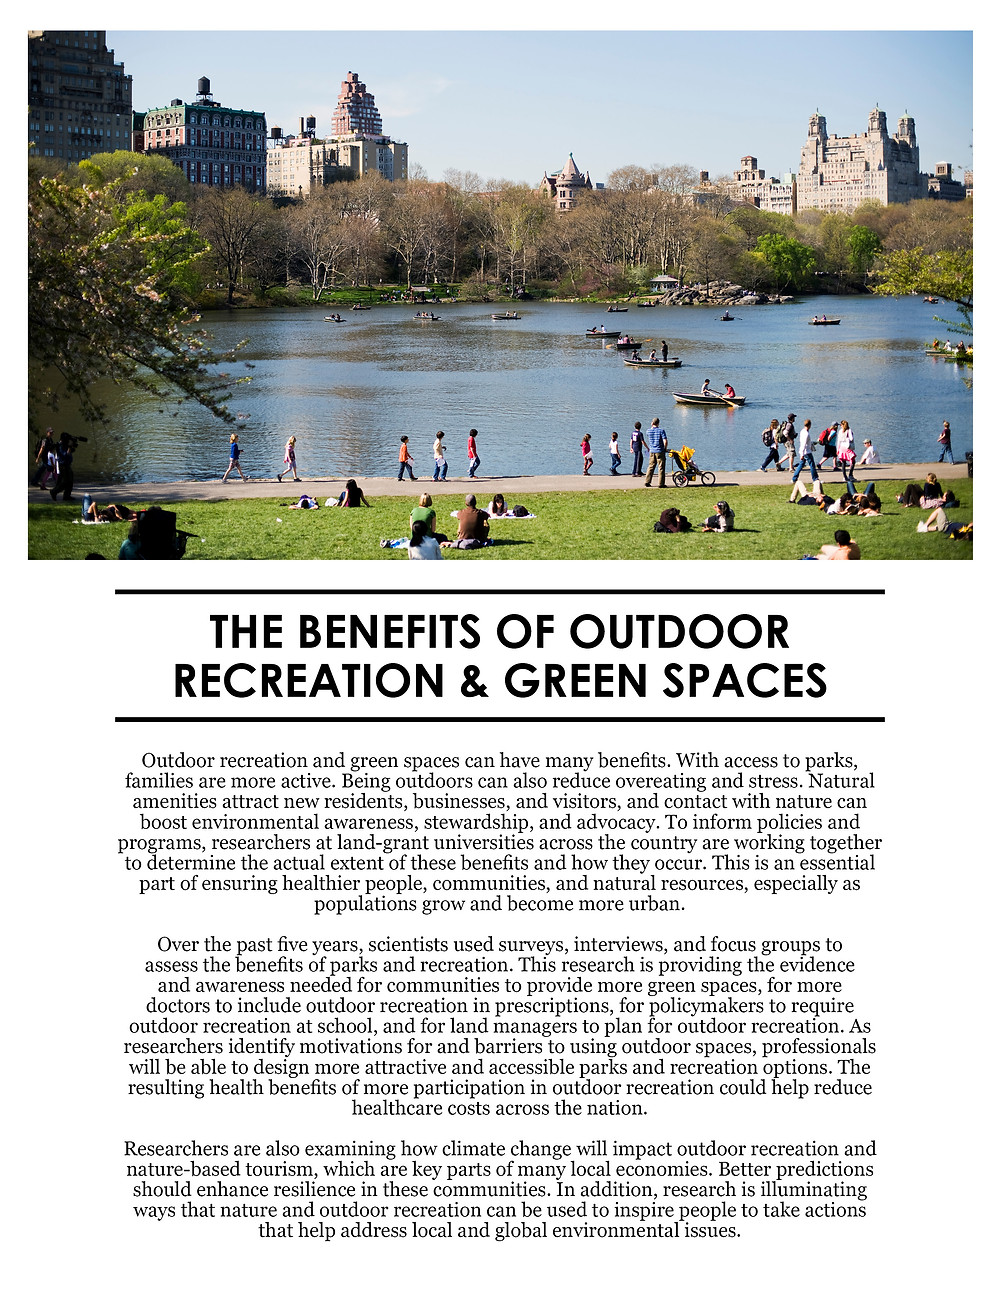 Benefit of Outdoor Recreation and Green Spaces. Click to view/download a PDF of the Impact Statement.